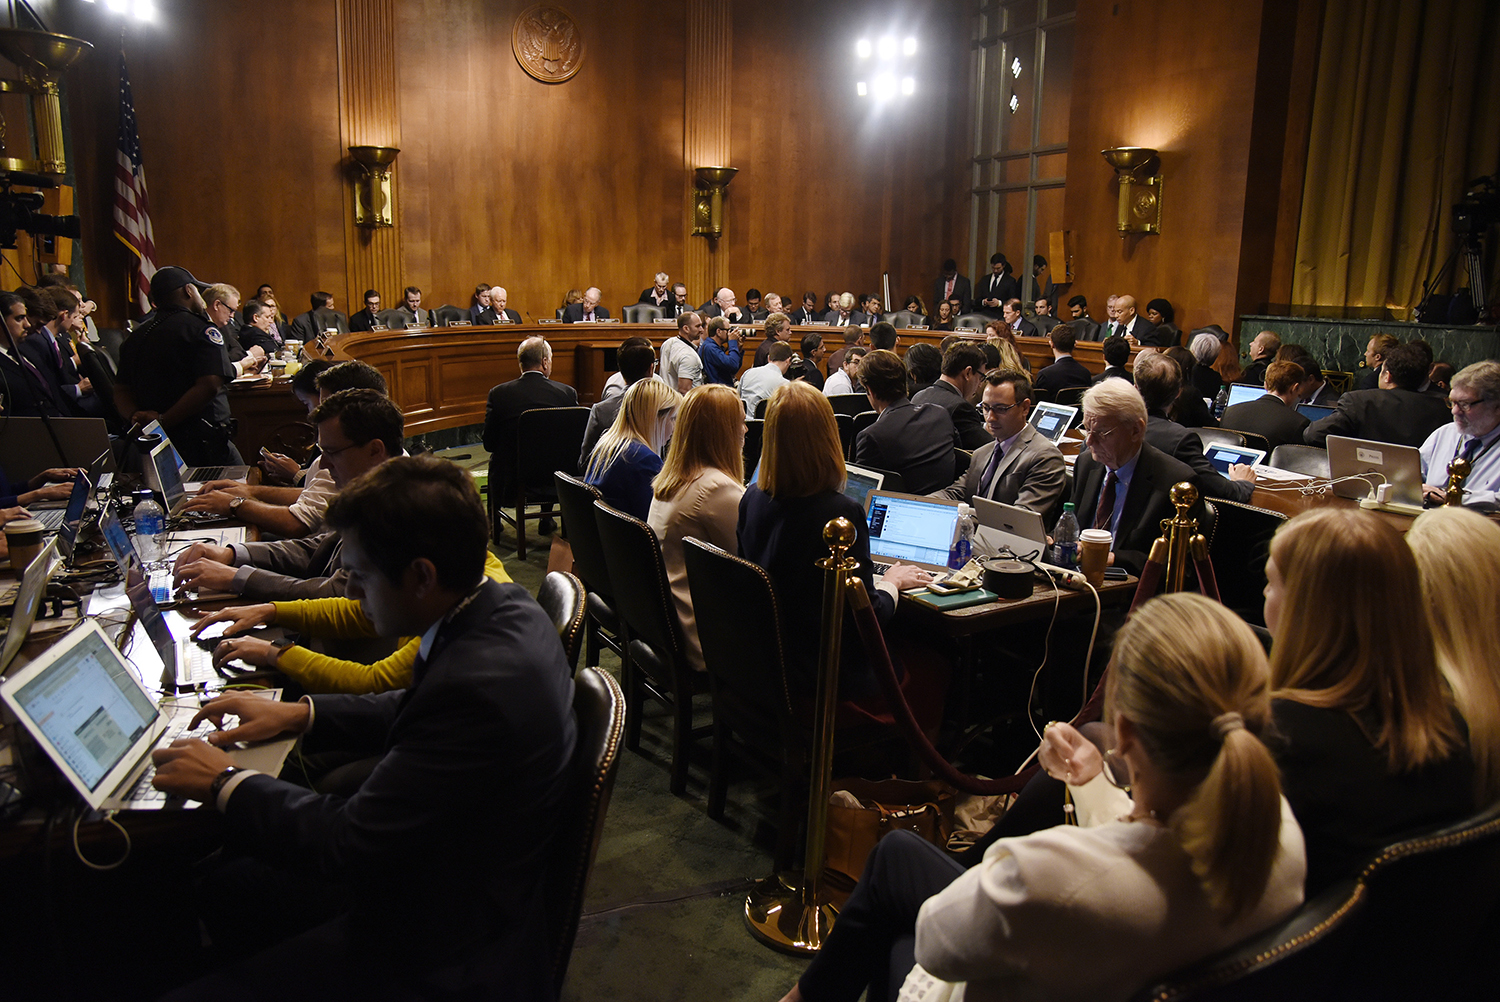 Senators wait to vote during the Senate Judiciary Committee meeting about the Supreme Court nominee Brett Kavanaugh Friday Sept. 28, 2018.  in Washington, D.C. (Olivier Douliery/Abaca Press/TNS)